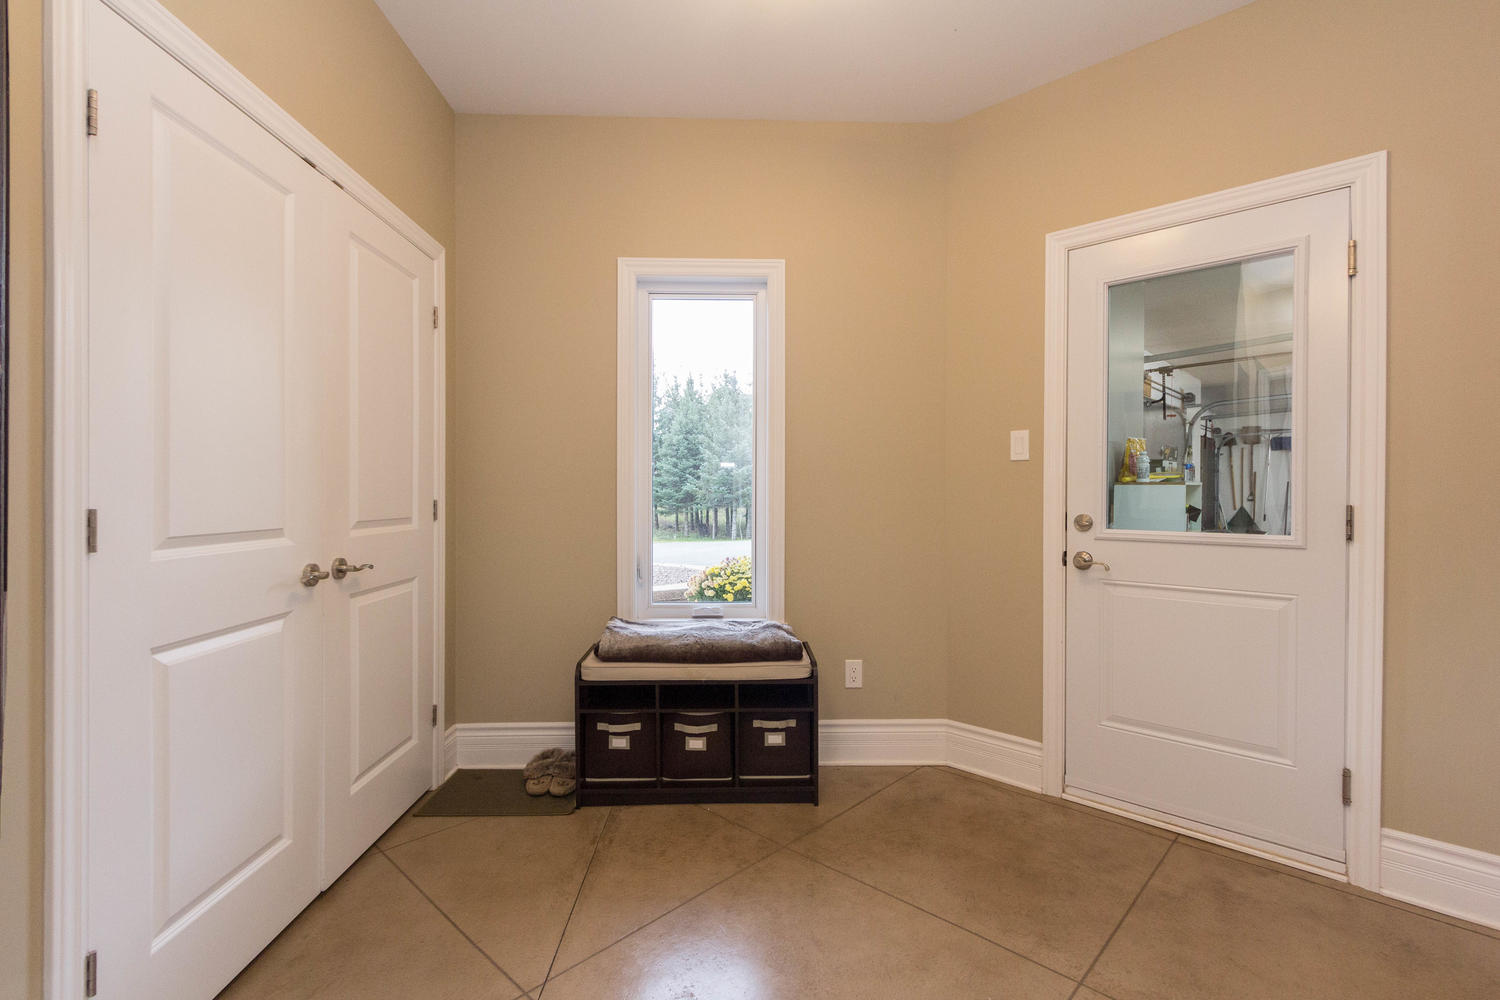 When you are done playing with your toys and need to come in, come in through the garage and through this very spacious mud room with lots of storage space.